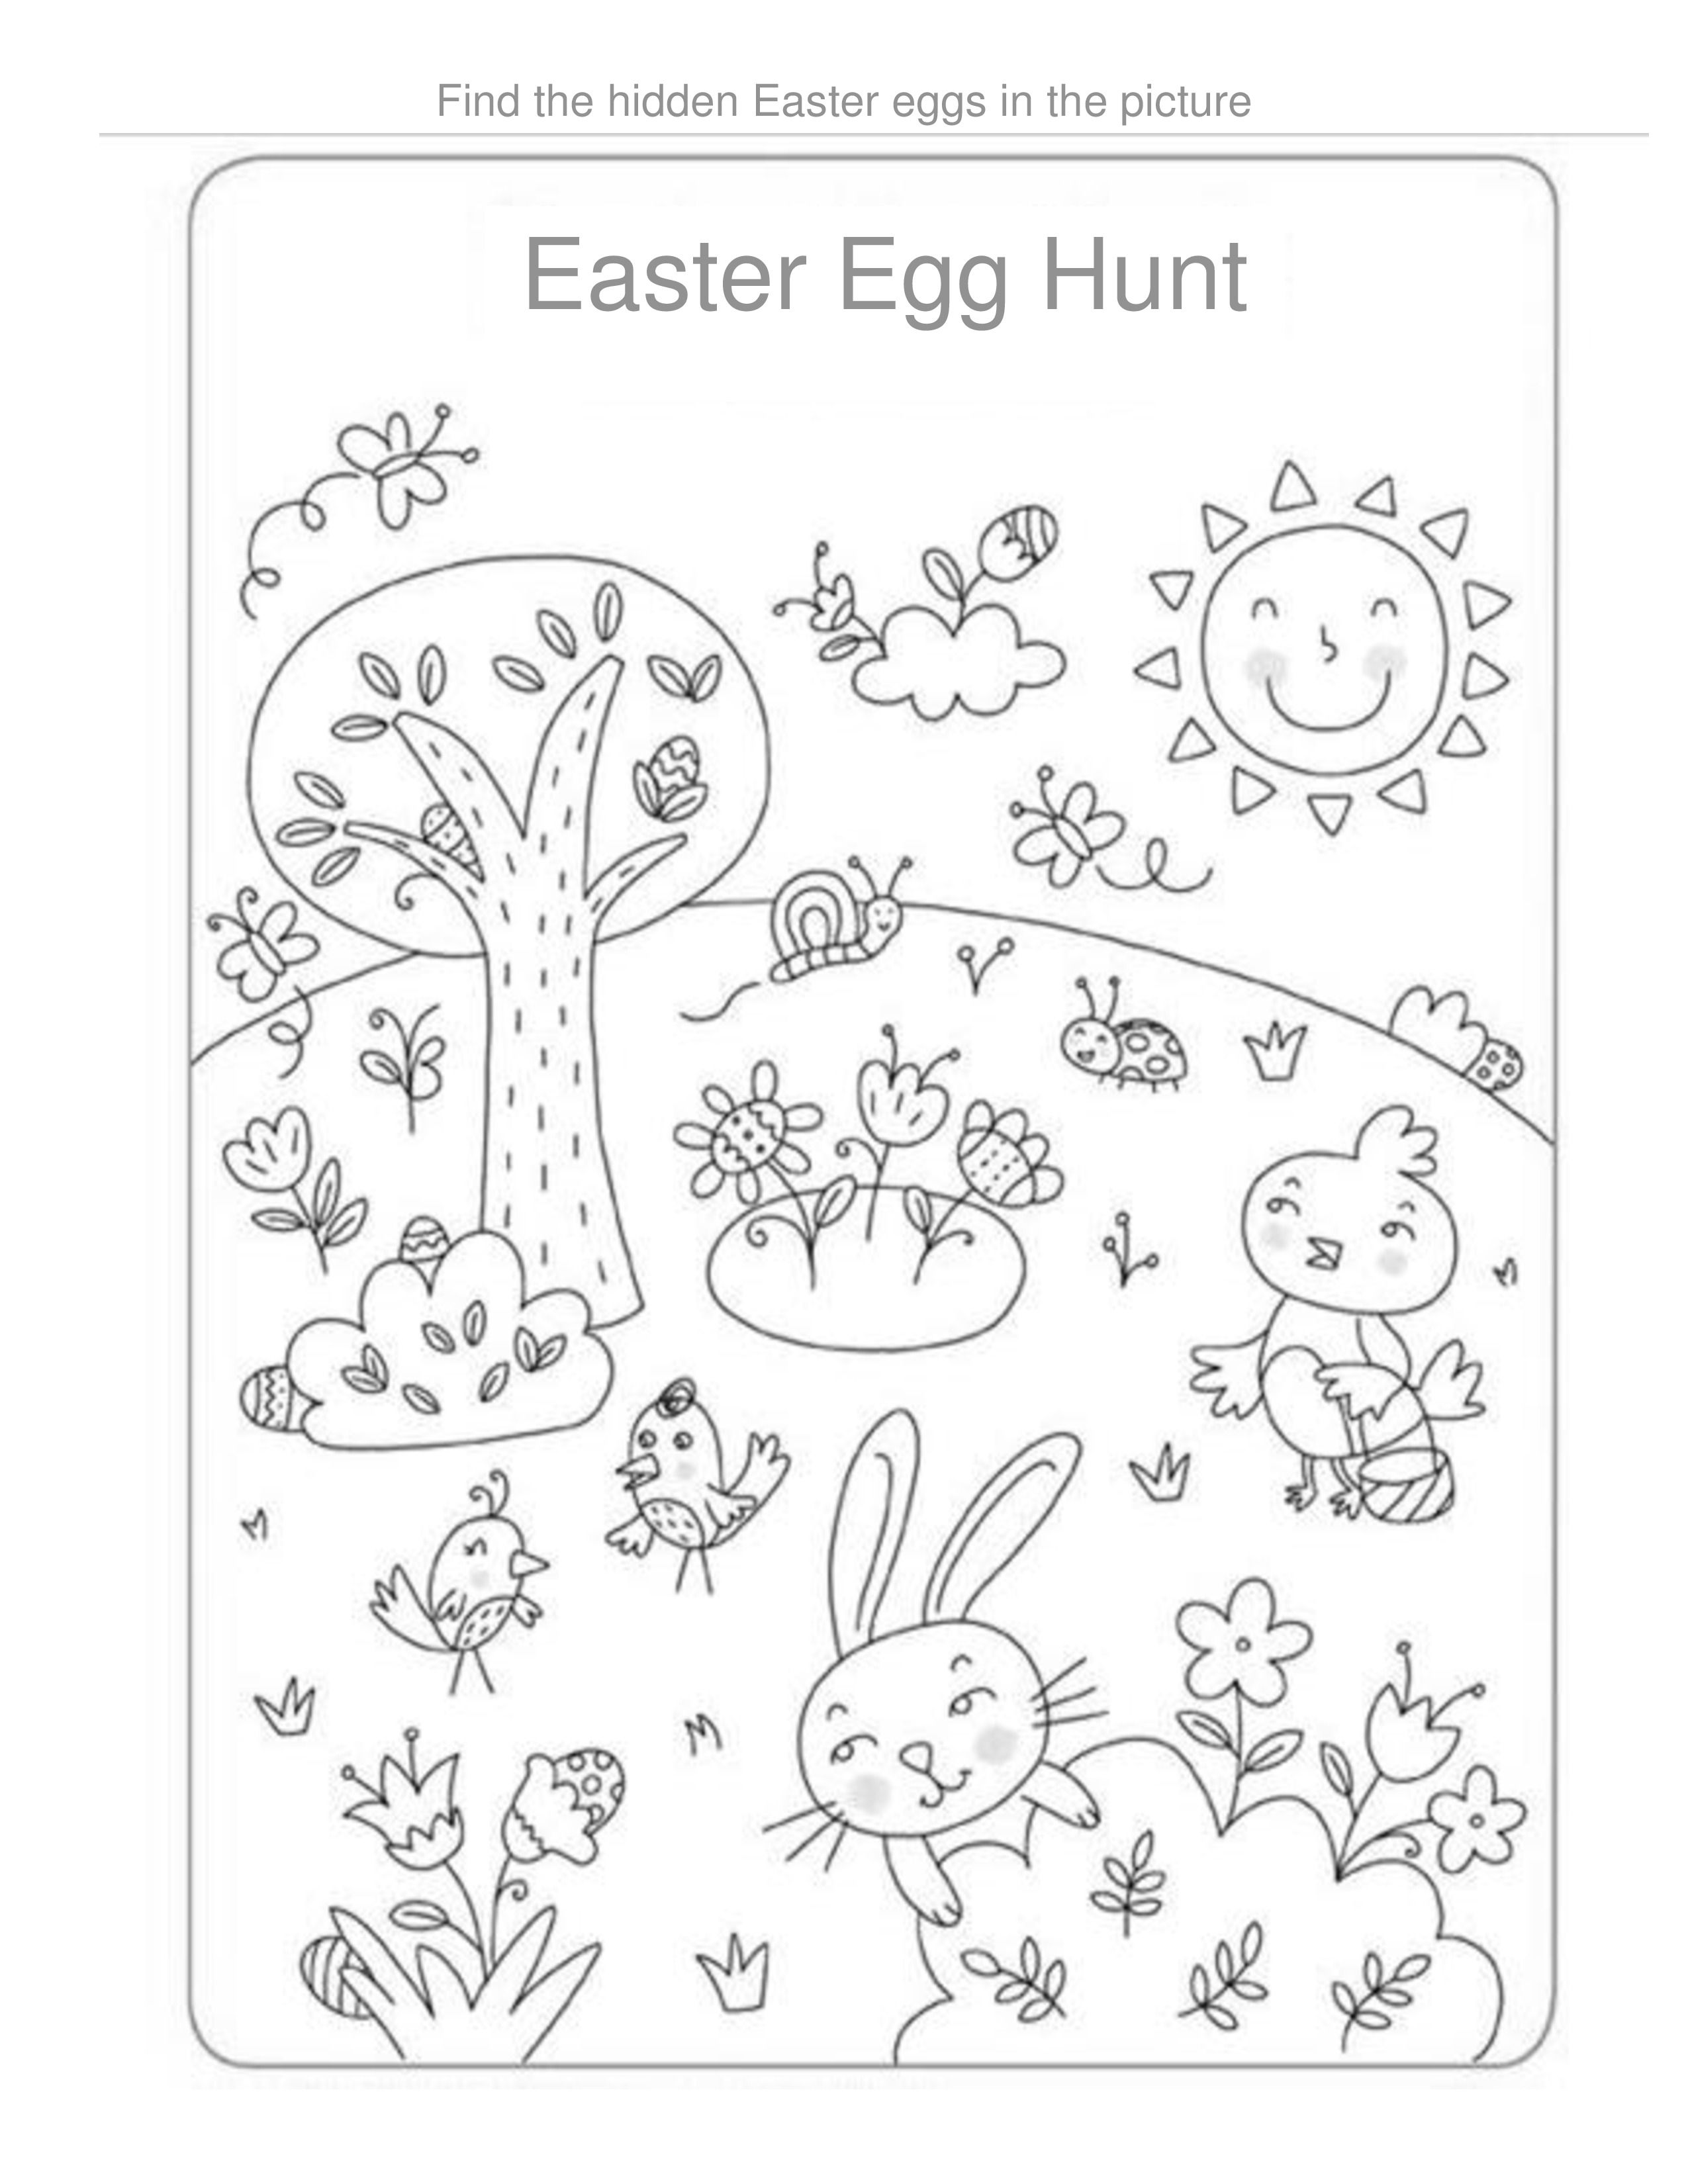 Find The Hidden Easter Eggs In The Coloring Page In